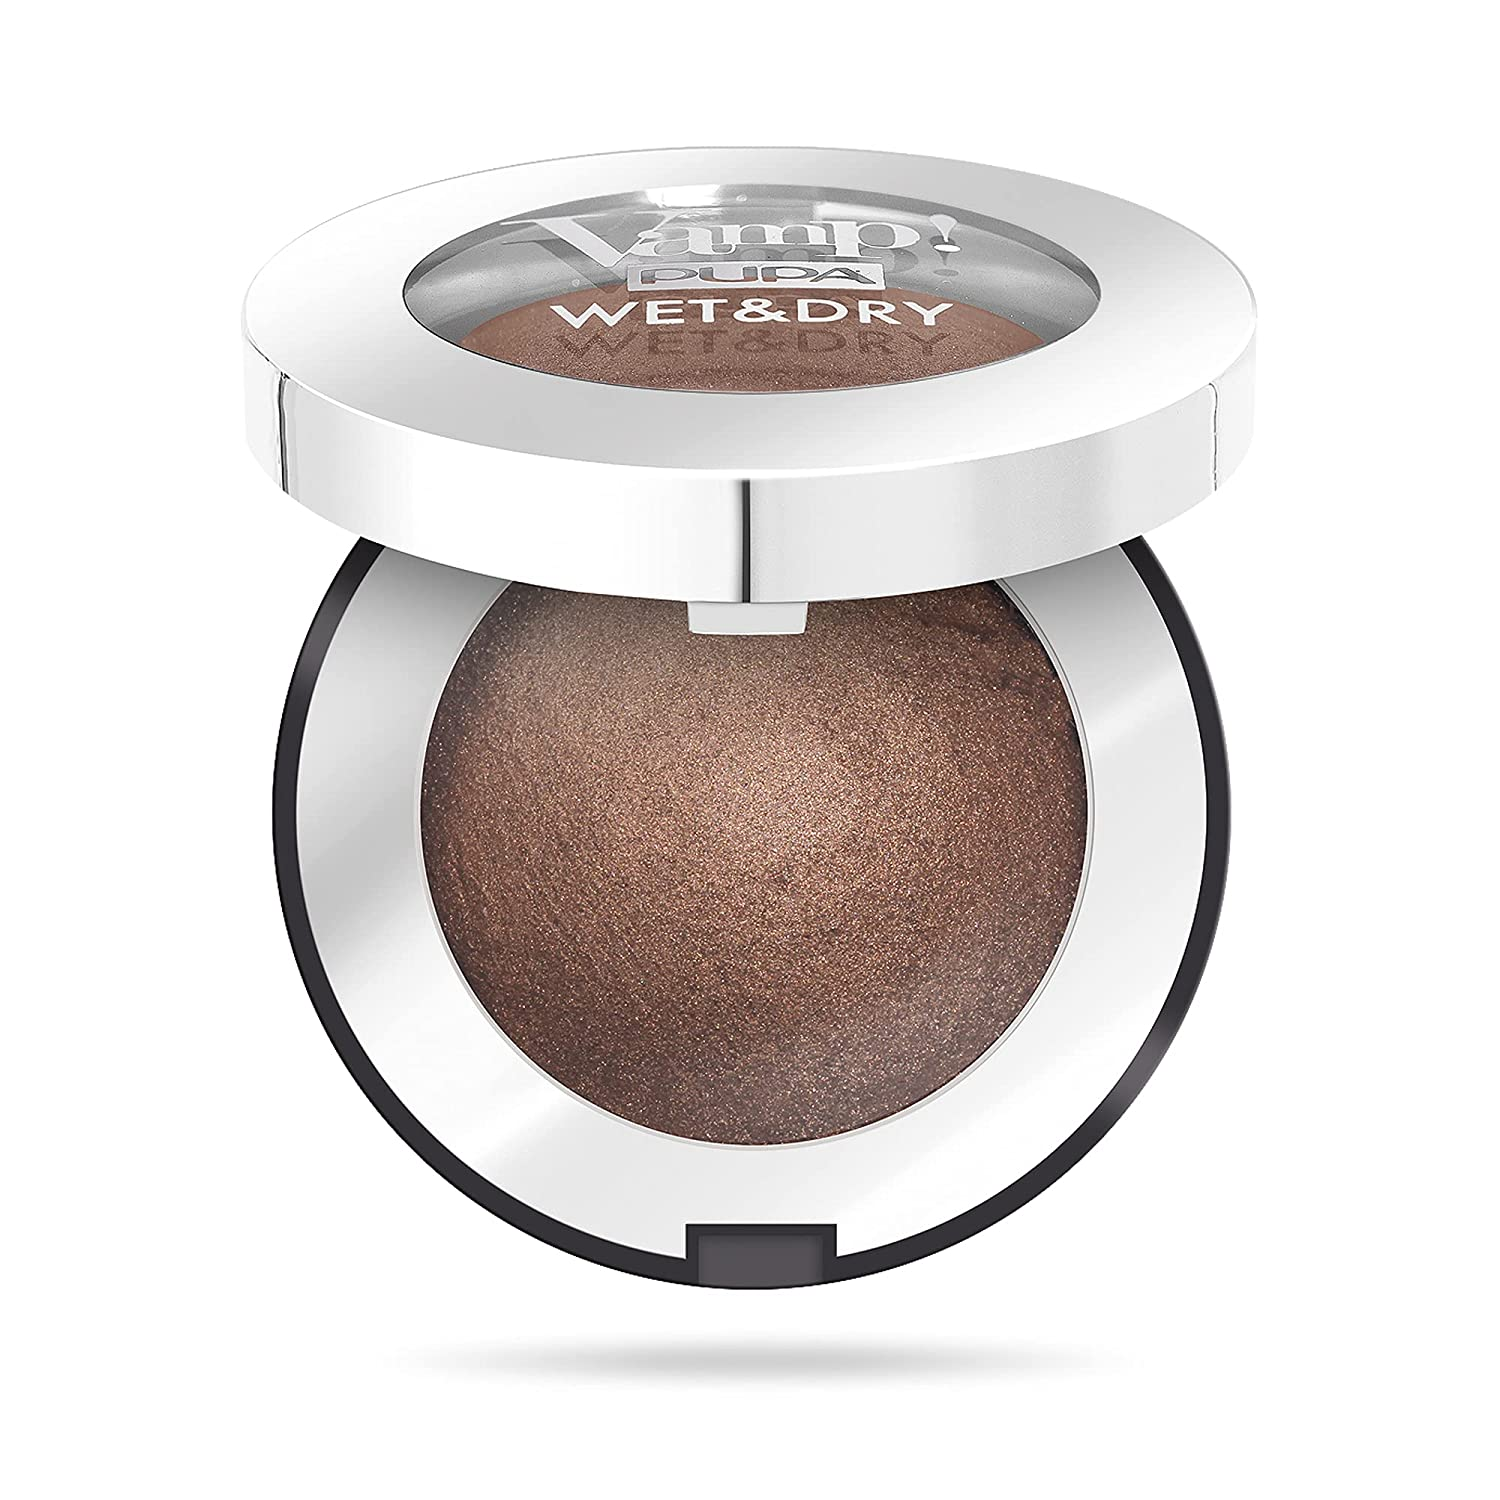 Vamp! Wet and Dry Baked Eyeshadow – 105 Warm Brown by Pupa Milano for Women – 0.035 oz Eye Shadow